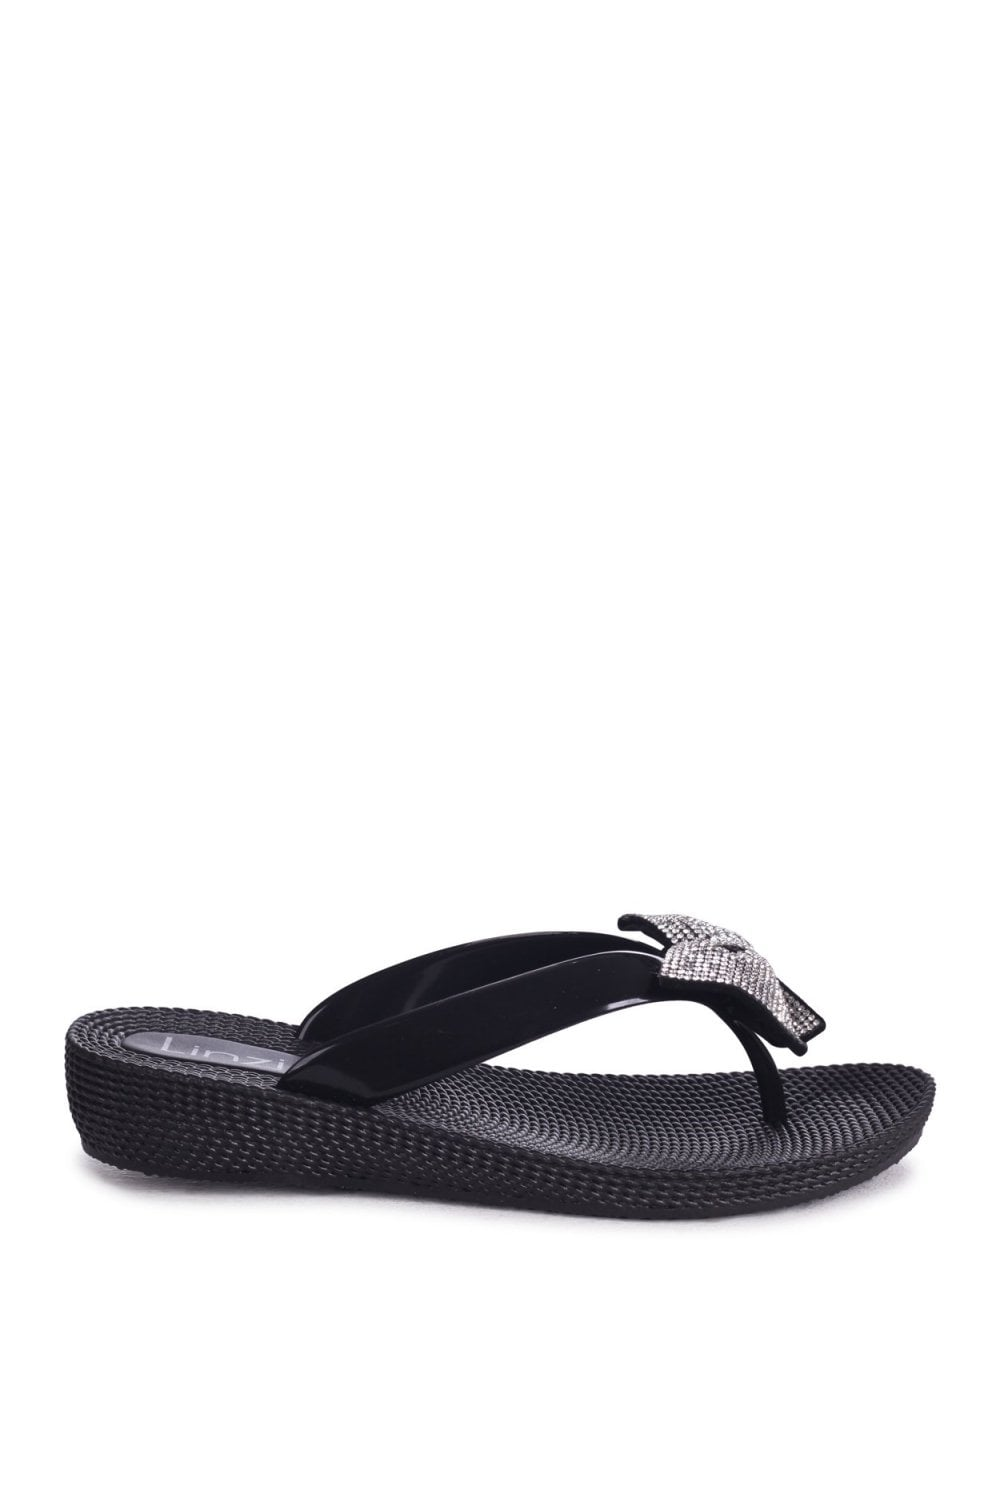 9b294792c Linzi Terri Black Wedged Jelly Flip Flops With Diamante Bow - Linzi ...